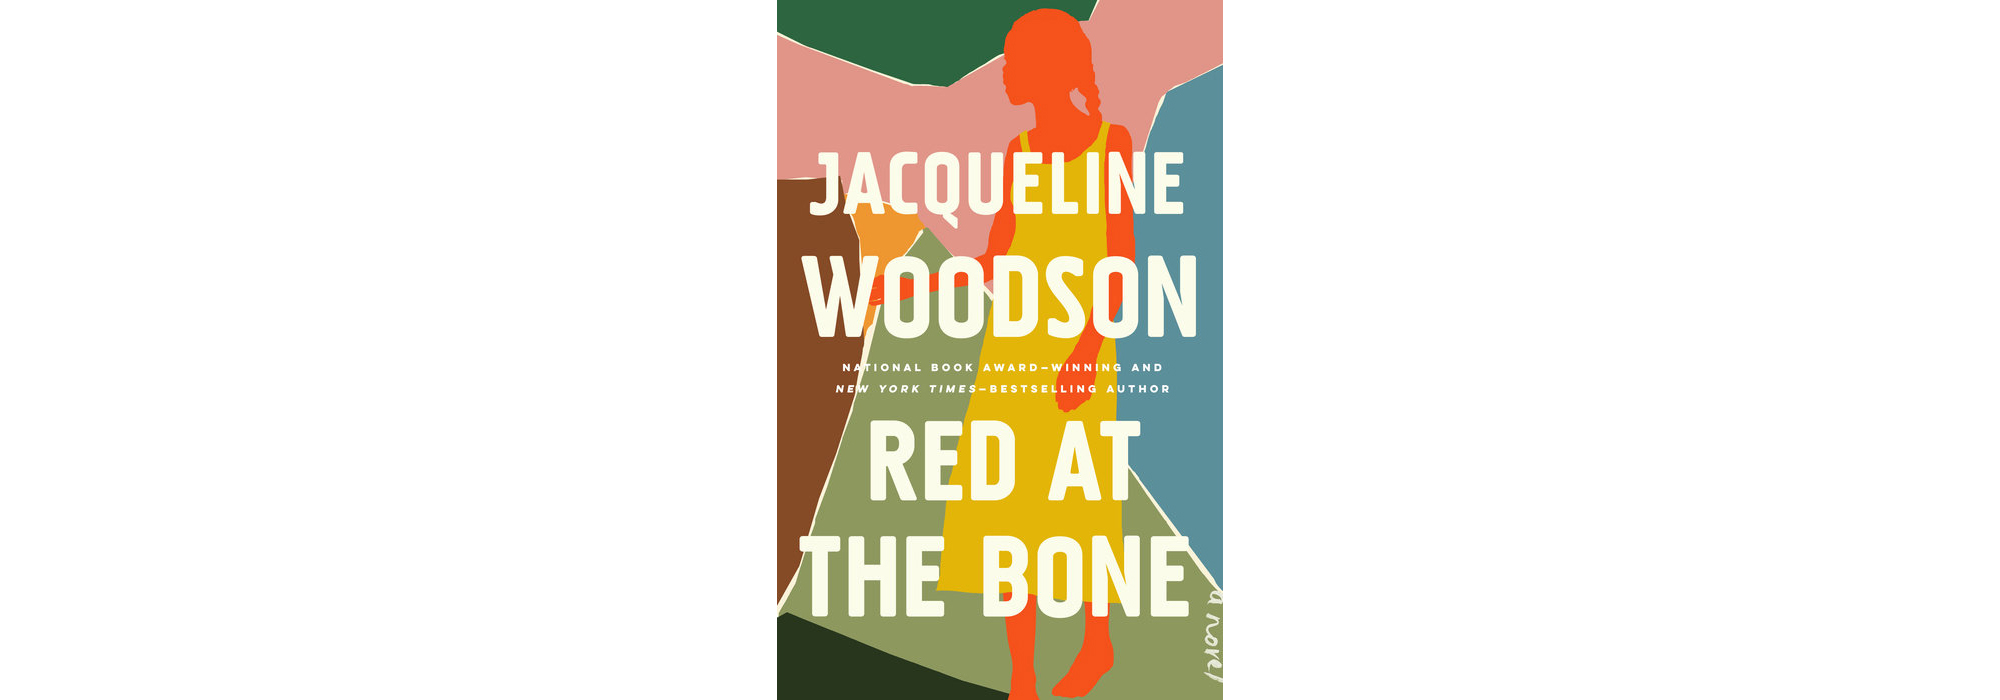 Cover of Red at the Bone by Jacqueline Woodson